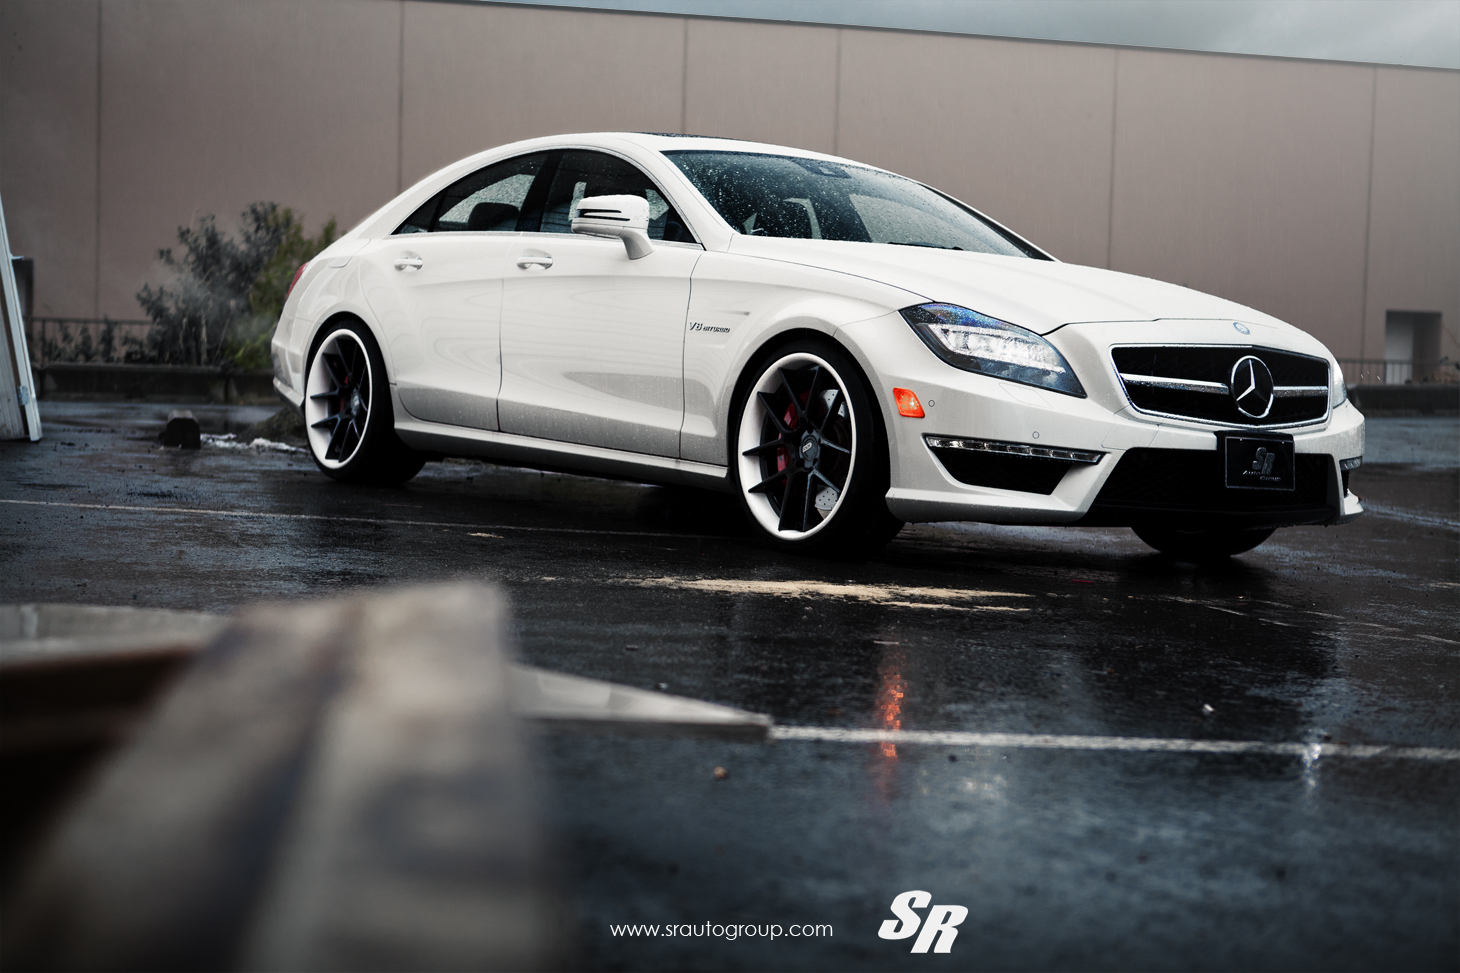 Sr auto mercedes benz cls63 amg equipped with adv 5 0 wheels for Mercedes benz cls63